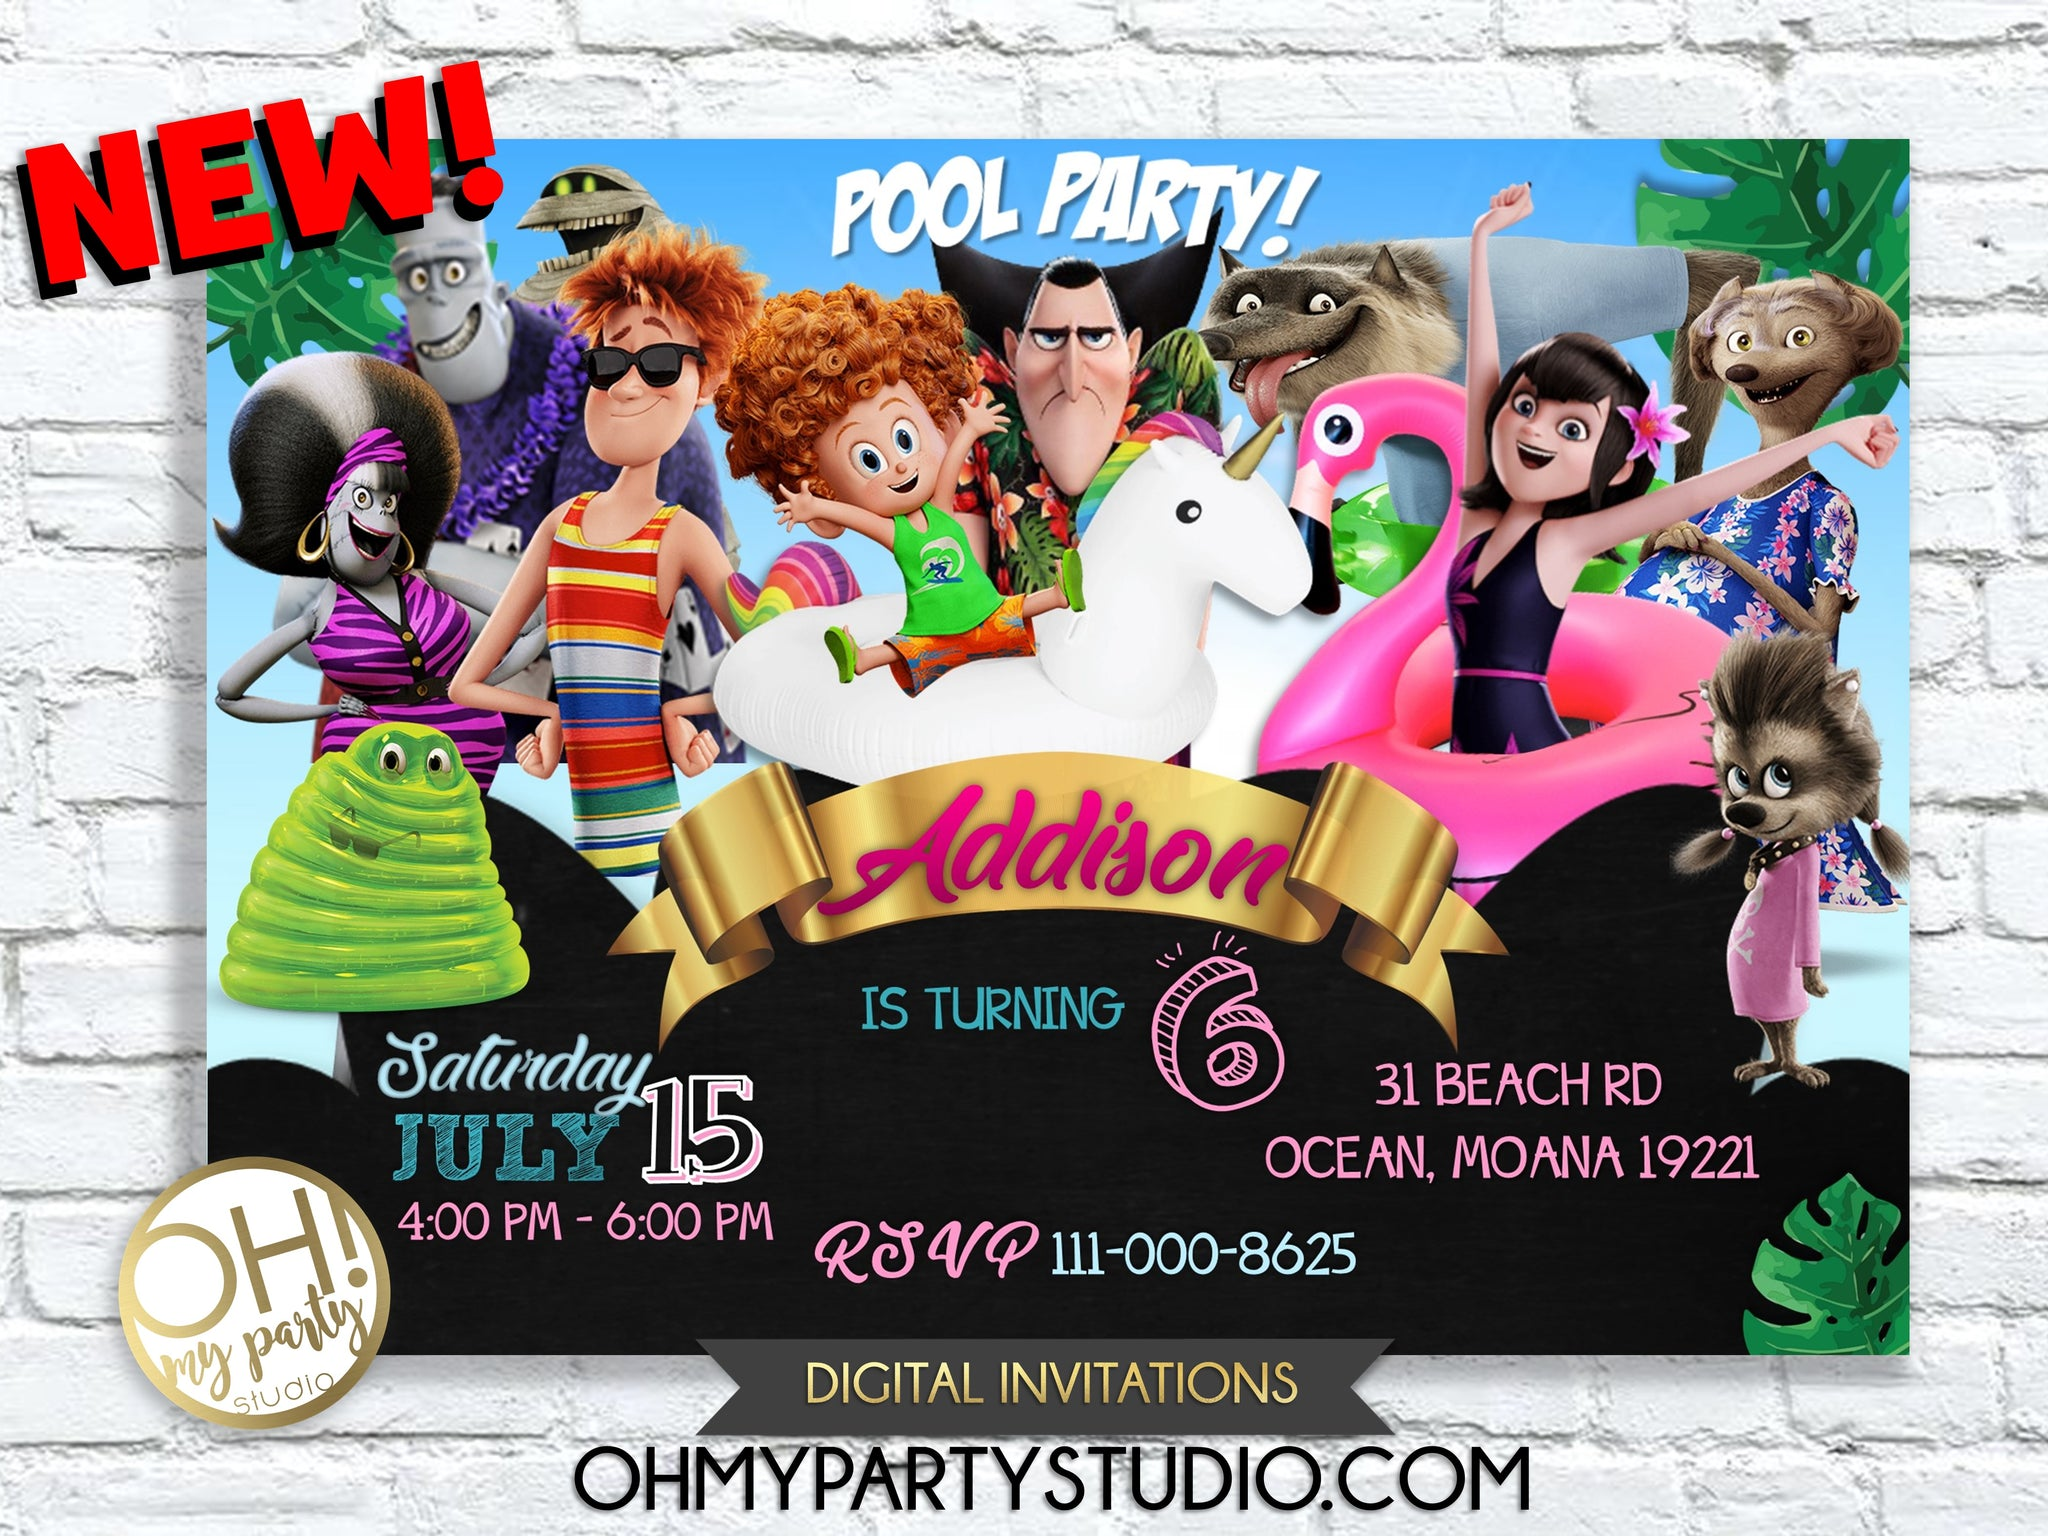 HOTEL TRANSYLVANIA BIRTHDAY INVITATION, HOTEL TRANSYLVANIA INVITATION, HOTEL TRANSYLVANIA INVITATIONS, HOTEL TRANSYLVANIA BIRTHDAY, HOTEL TRANSYLVANIA PARTY, HOTEL TRANSYLVANIA BIRTHDAY INSPIRATION, HOTEL TRANSYLVANIA PARTY INSPIRATION, HOTEL TRANSYLVANIA 3 PARTY, HOTEL TRANSYLVANIA 3 BIRTHDAY, HOTEL TRANSYLVANIA INVITE, HOTEL TRANSYLVANIA DIGITAL INVITATION, HOTEL TRANSYLVANIA INVITATIONS, hotel transylvania pool party